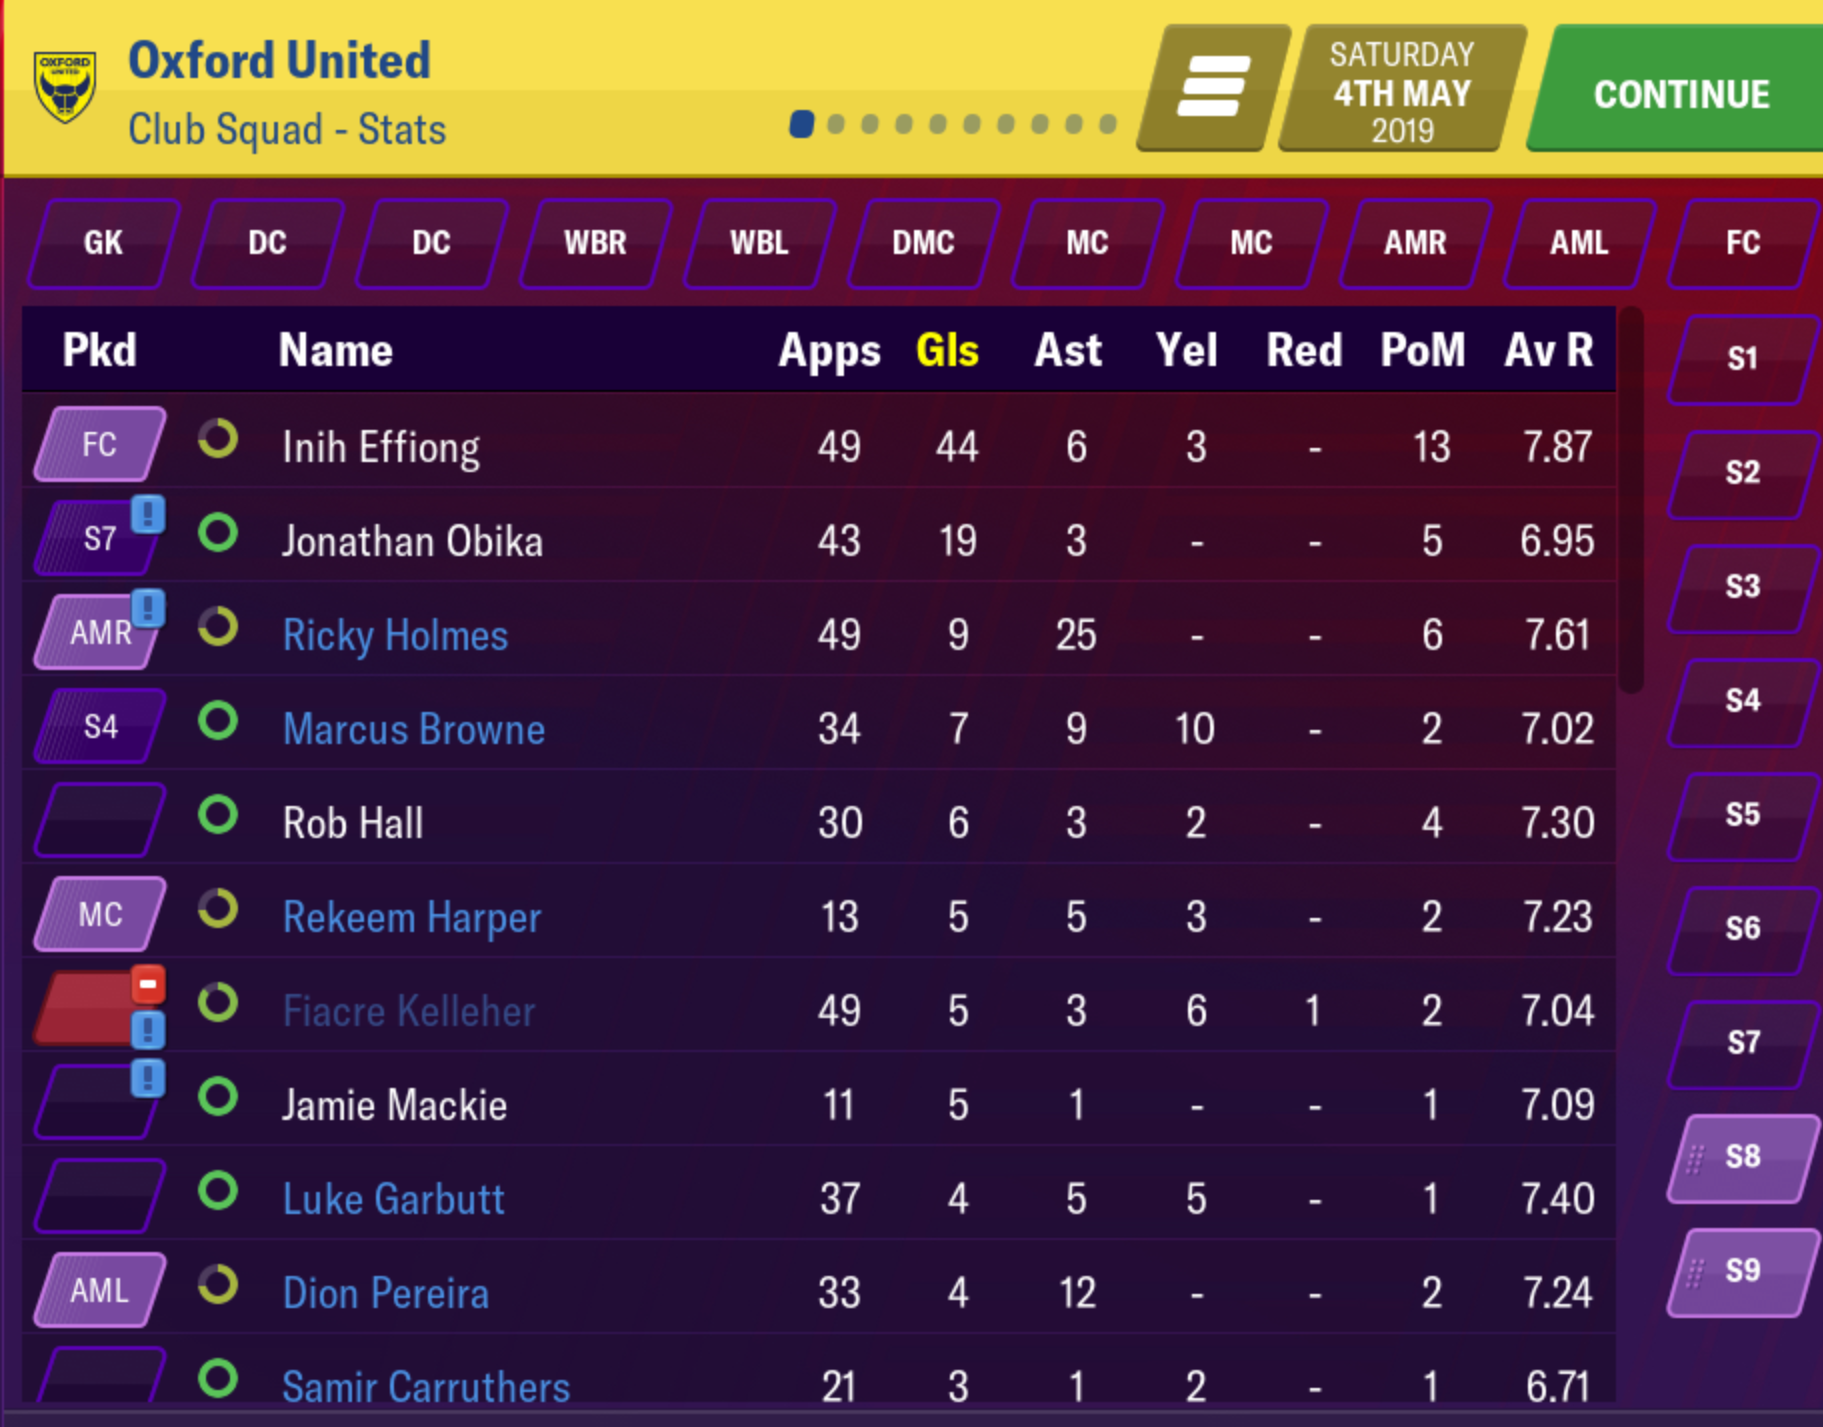 FMM19: Tips For Lower League Success - Football Manager 2019 Mobile